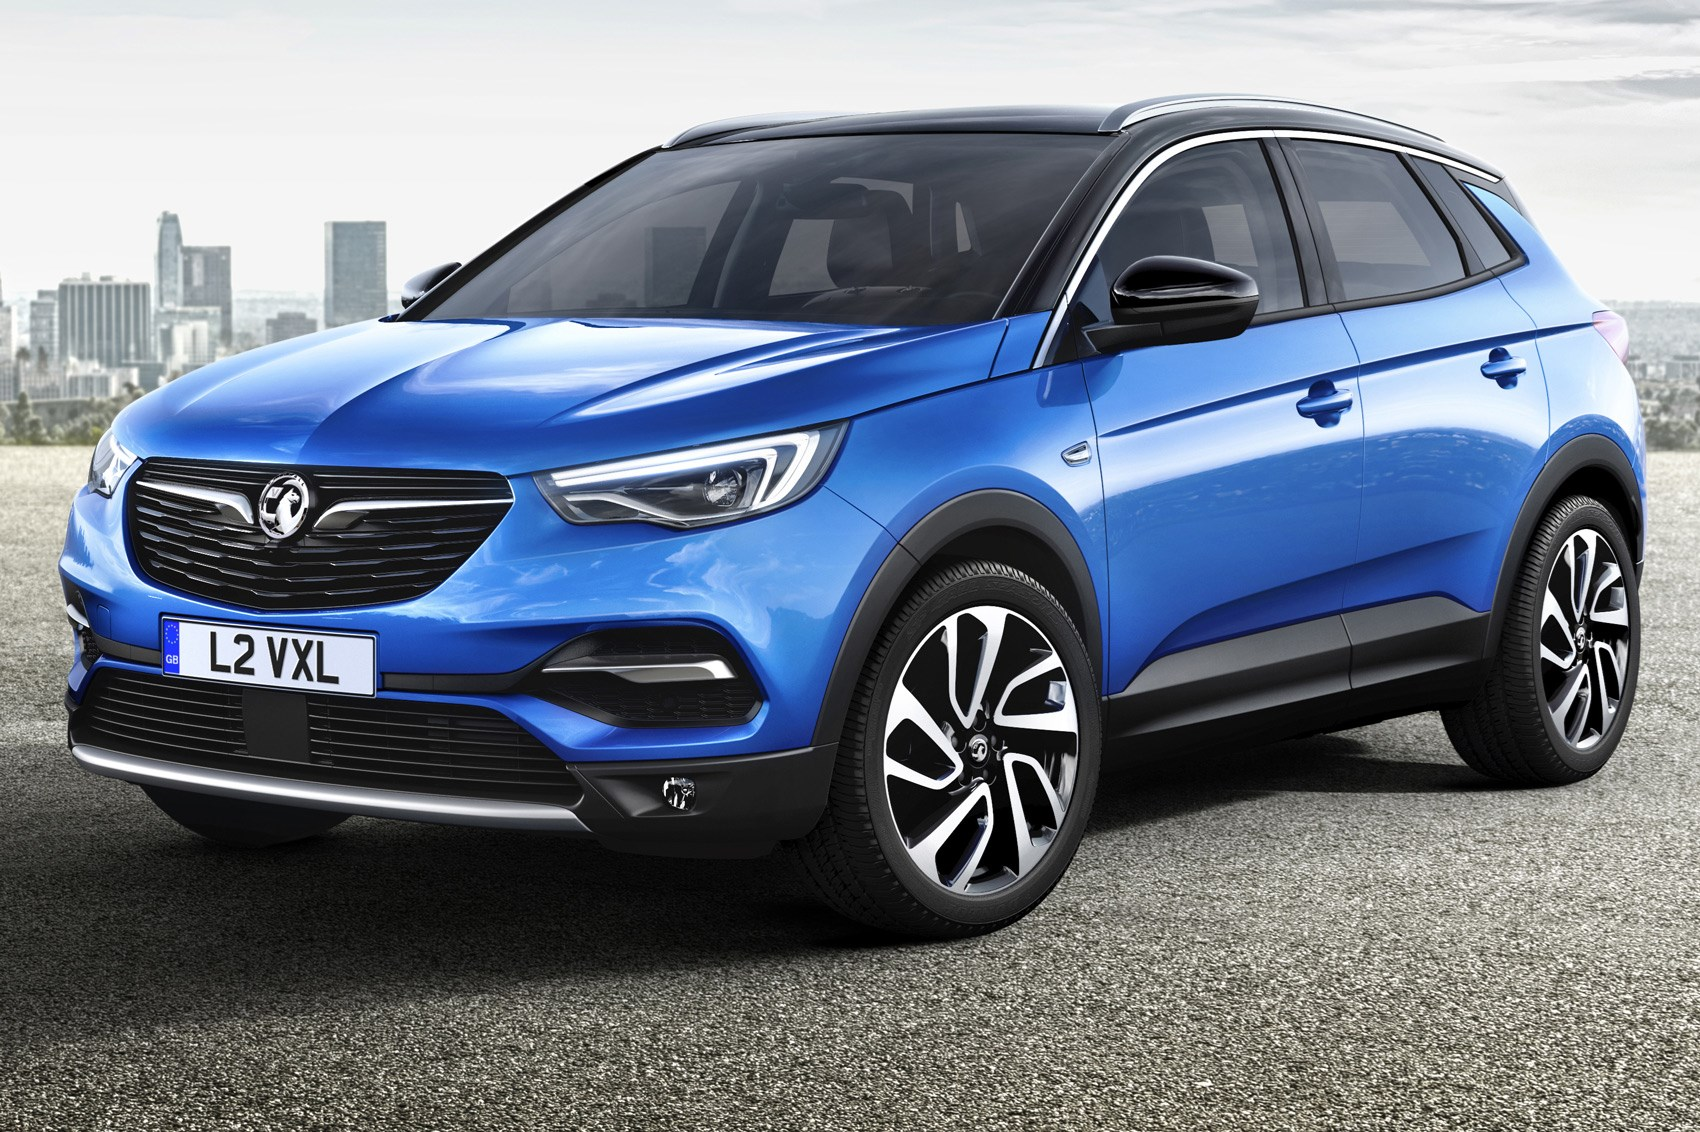 X Appeal First Details Of New Vauxhall Grandland X Suv